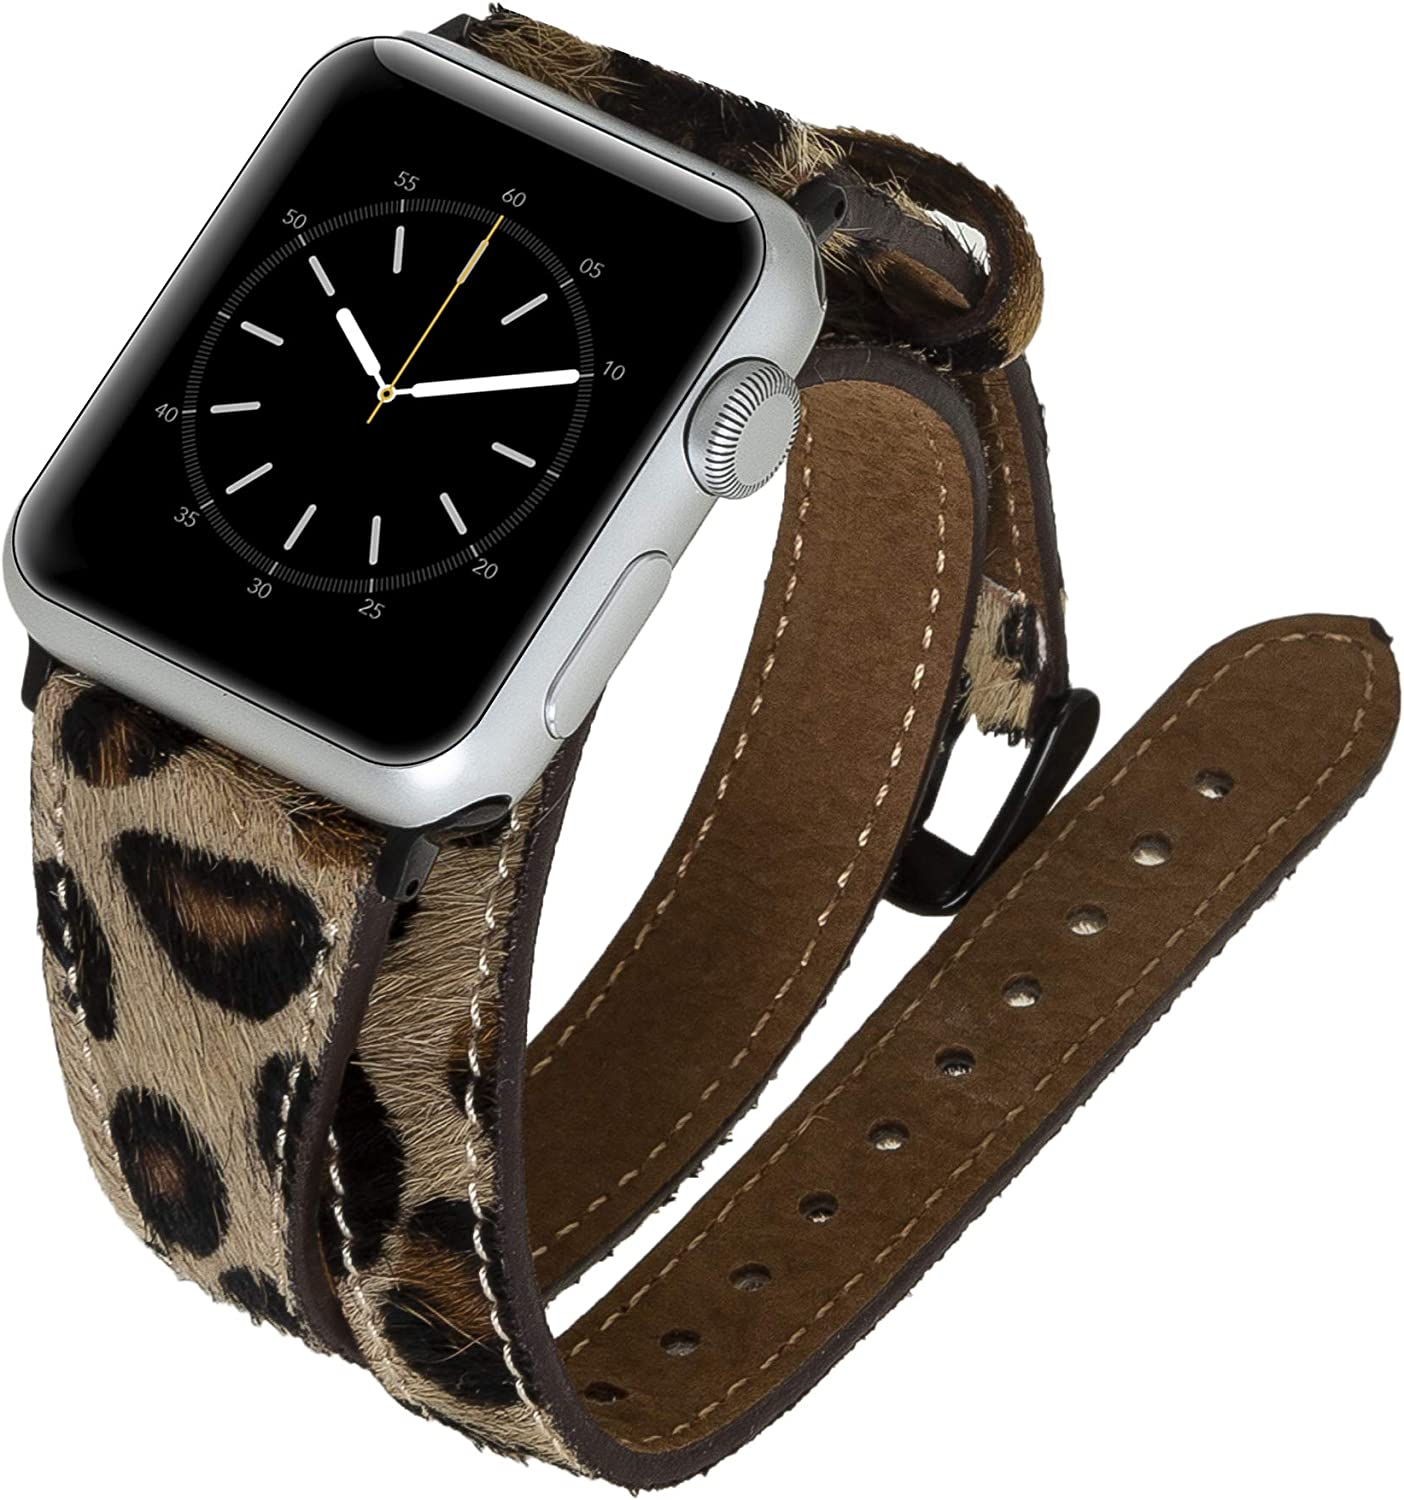 Venito Serena Slim Double Wrap Leather Watch Band Compatible with The Newest Apple Watch iwatch Series 6 as Well as Series 1,2,3,4,5 (Furry Leopard w/Black Stainless Steel Hardware, 38mm-40mm)